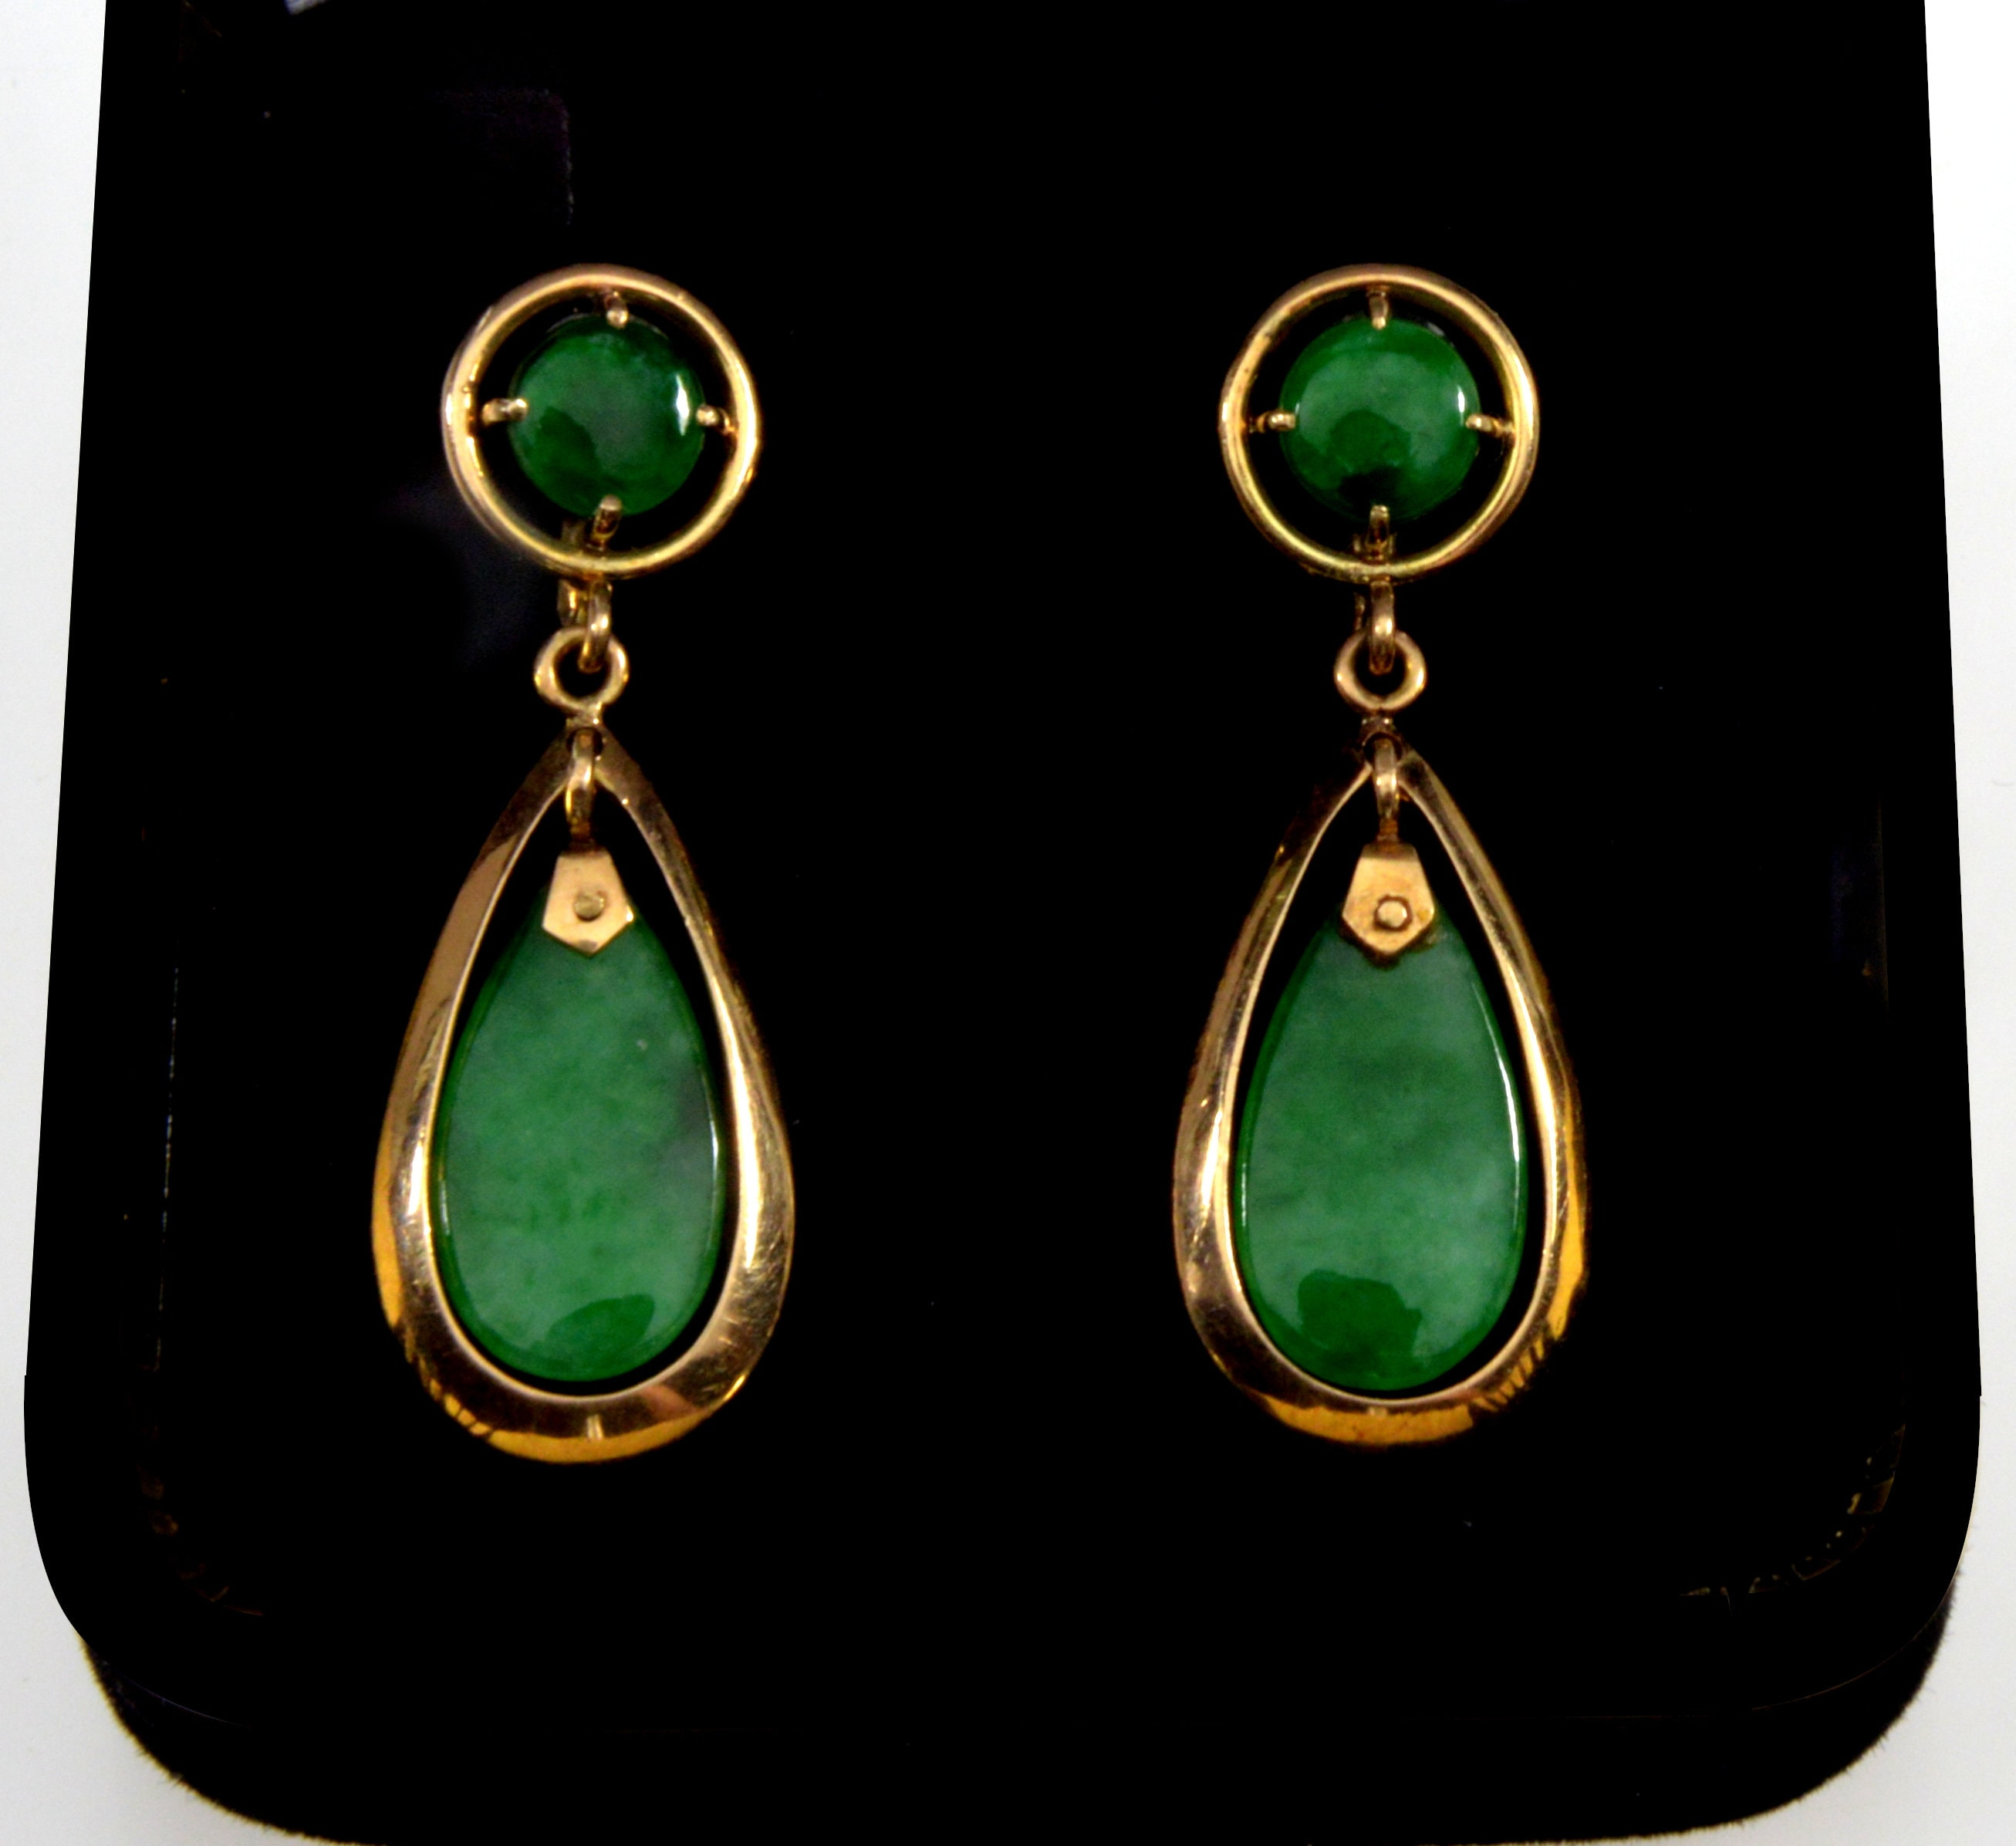 b72fbb95ad8b2 Art Deco 14K Jadeite Jade Teardrop Dangle Earrings